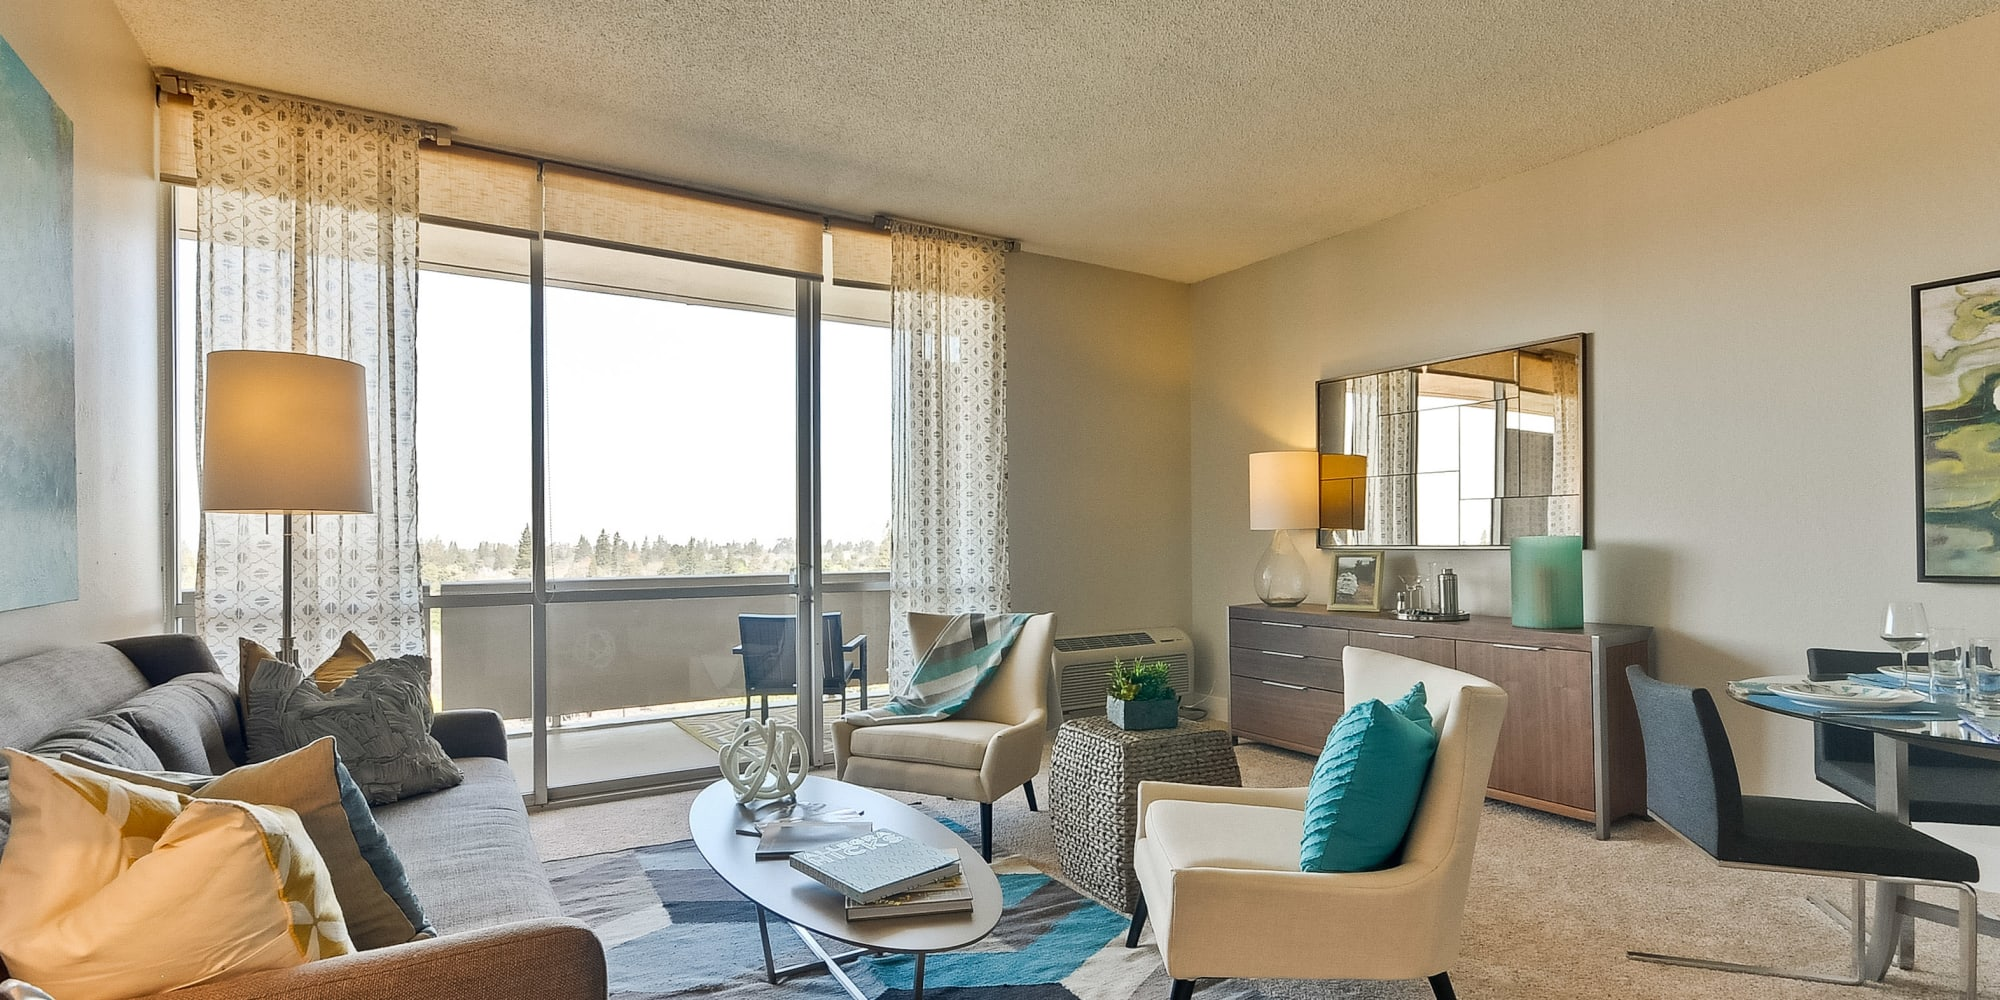 Luxury furnished apartments available at The Marc, Palo Alto in Palo Alto, California